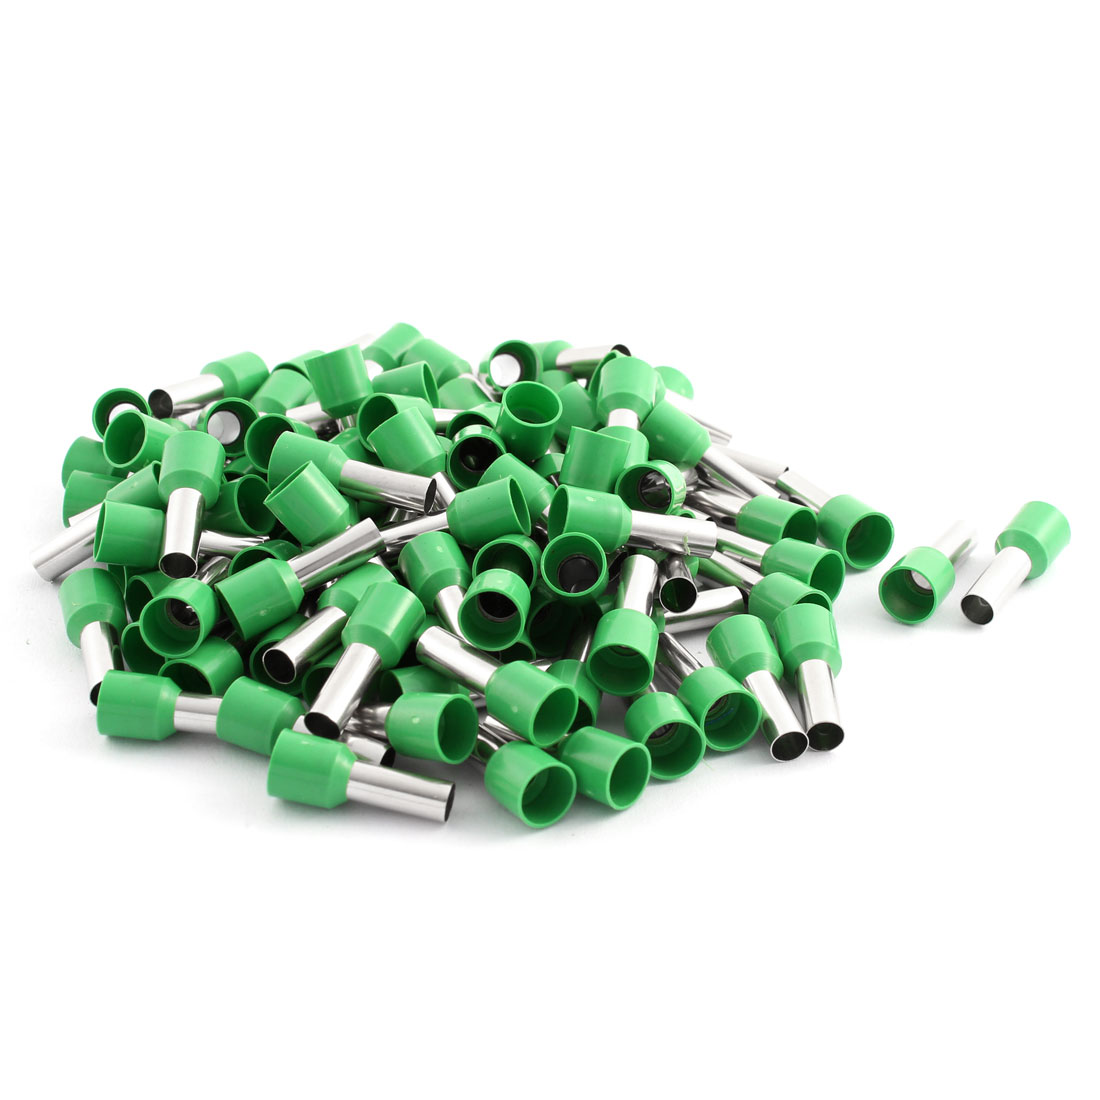 100 Pcs 10mm2 Crimp Wire End Terminal Insulated Bootlace Ferrule Connector Green